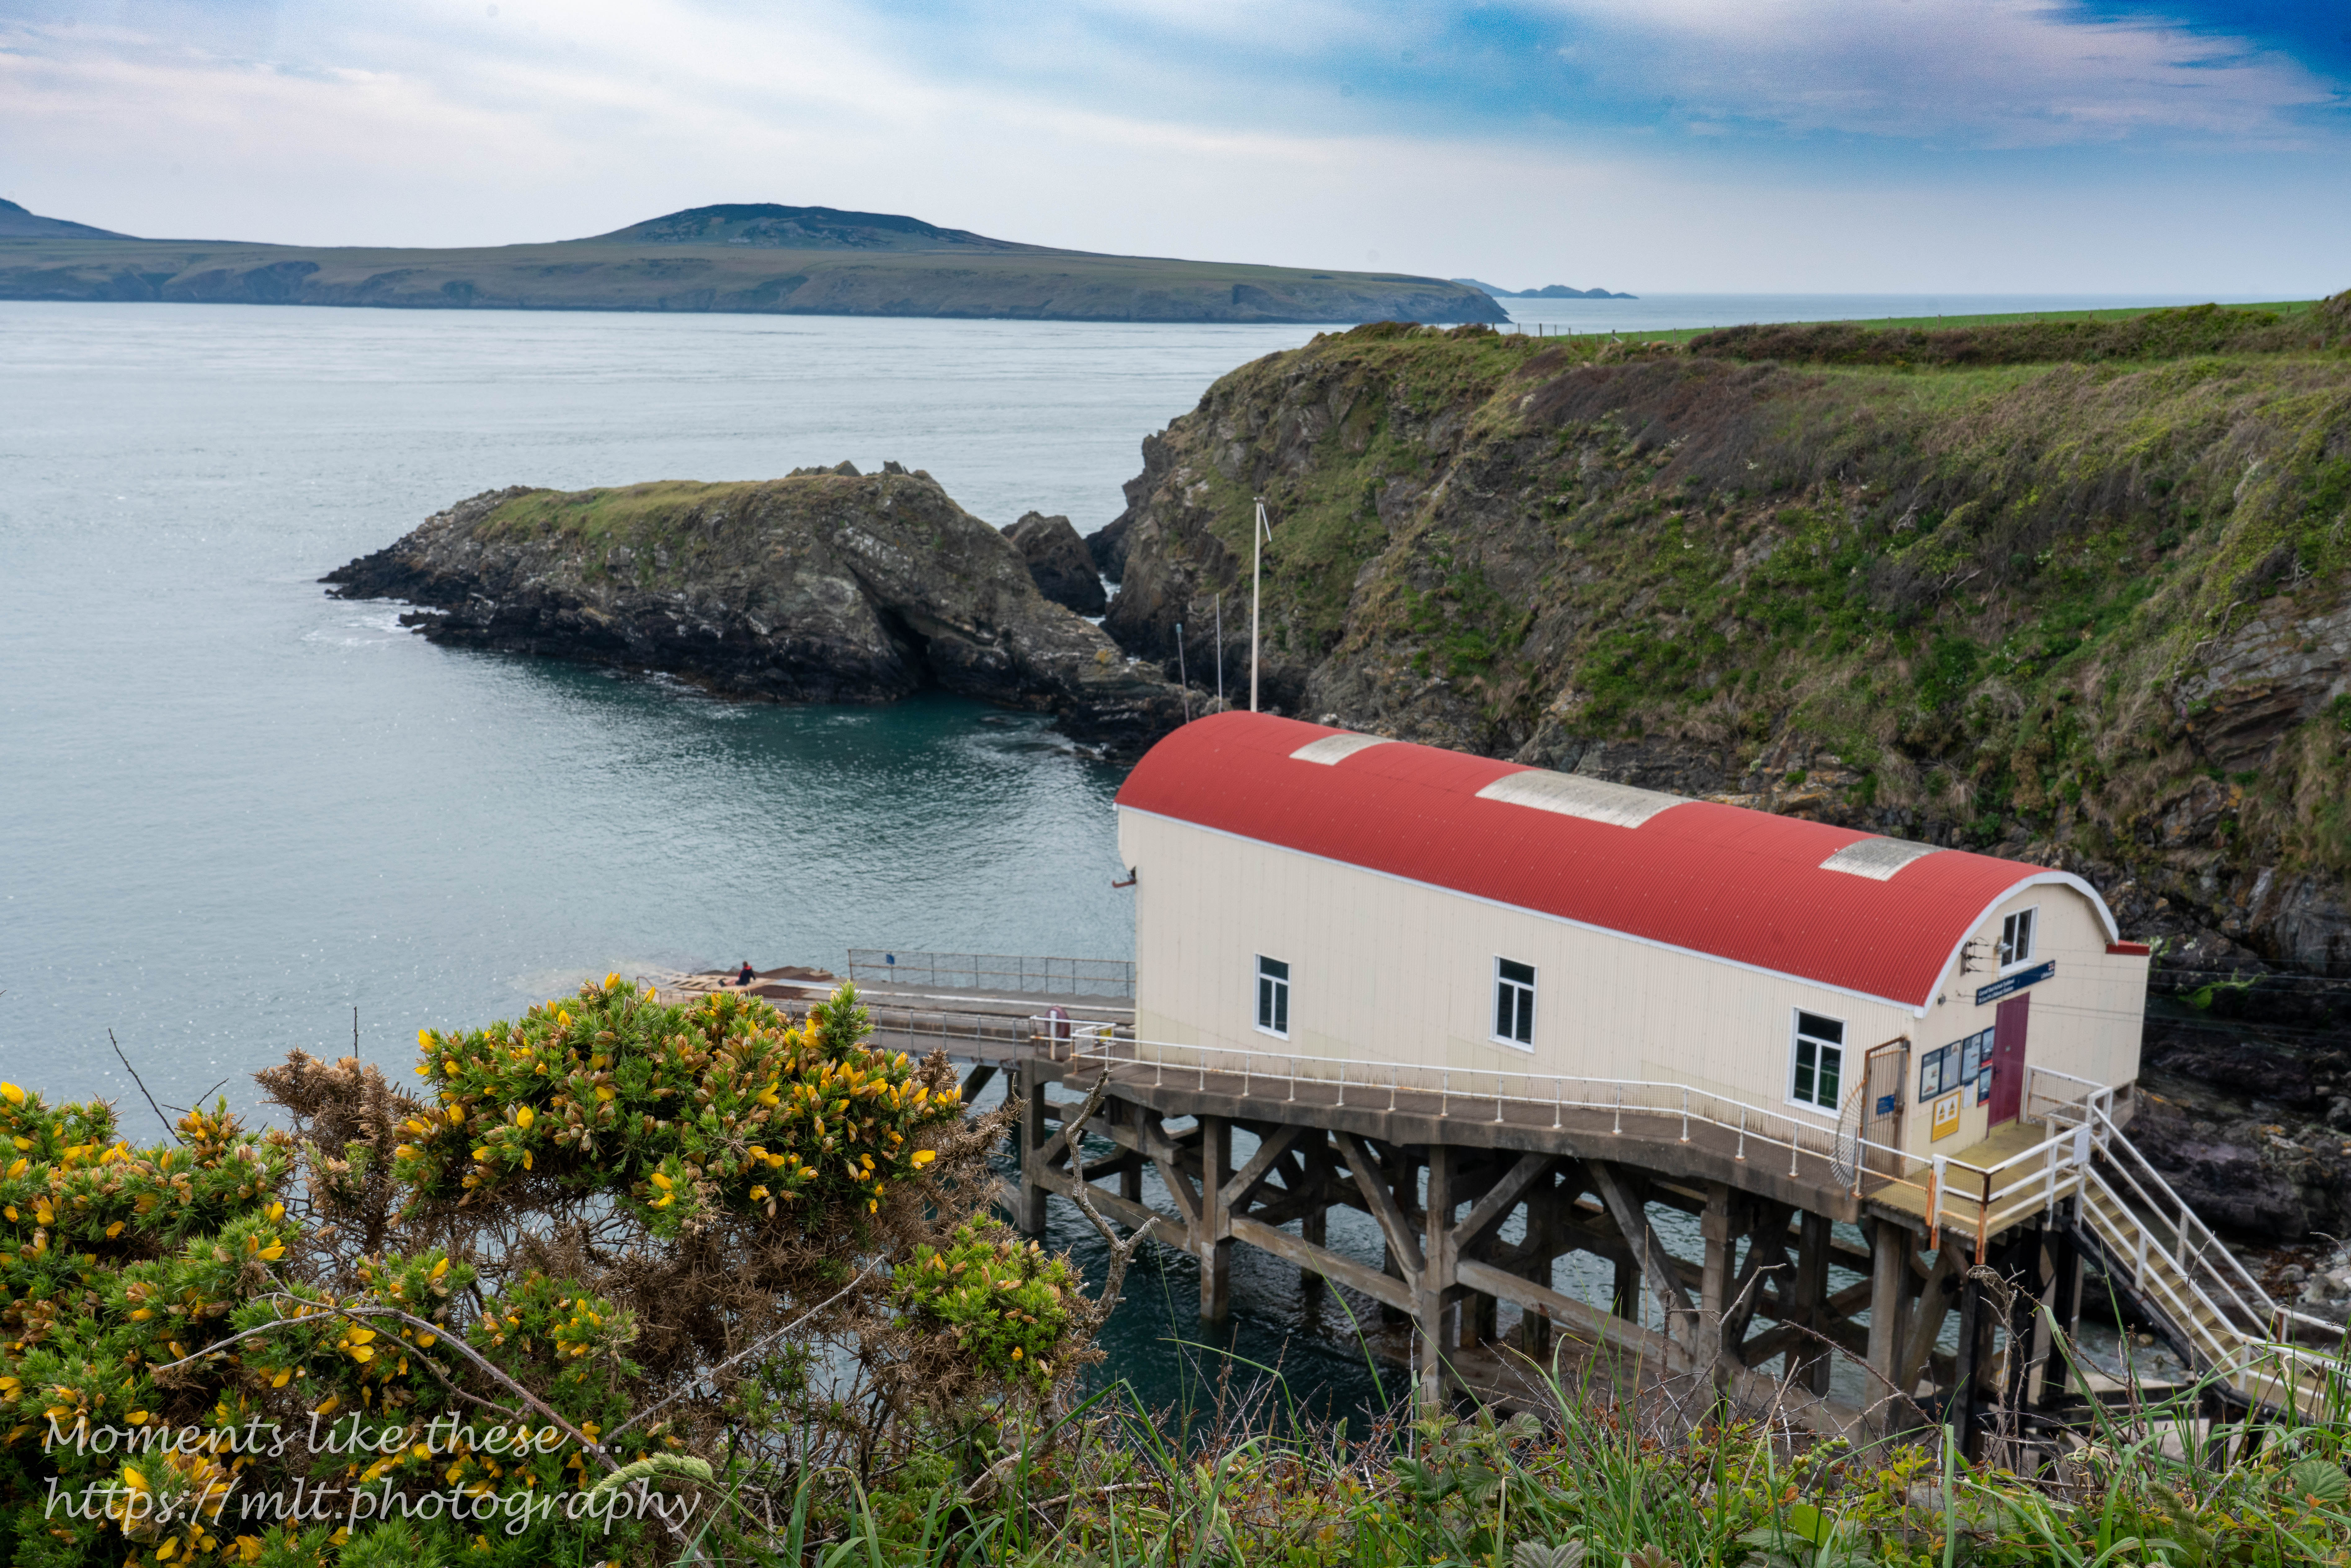 St Justininian - the old lifeboat station